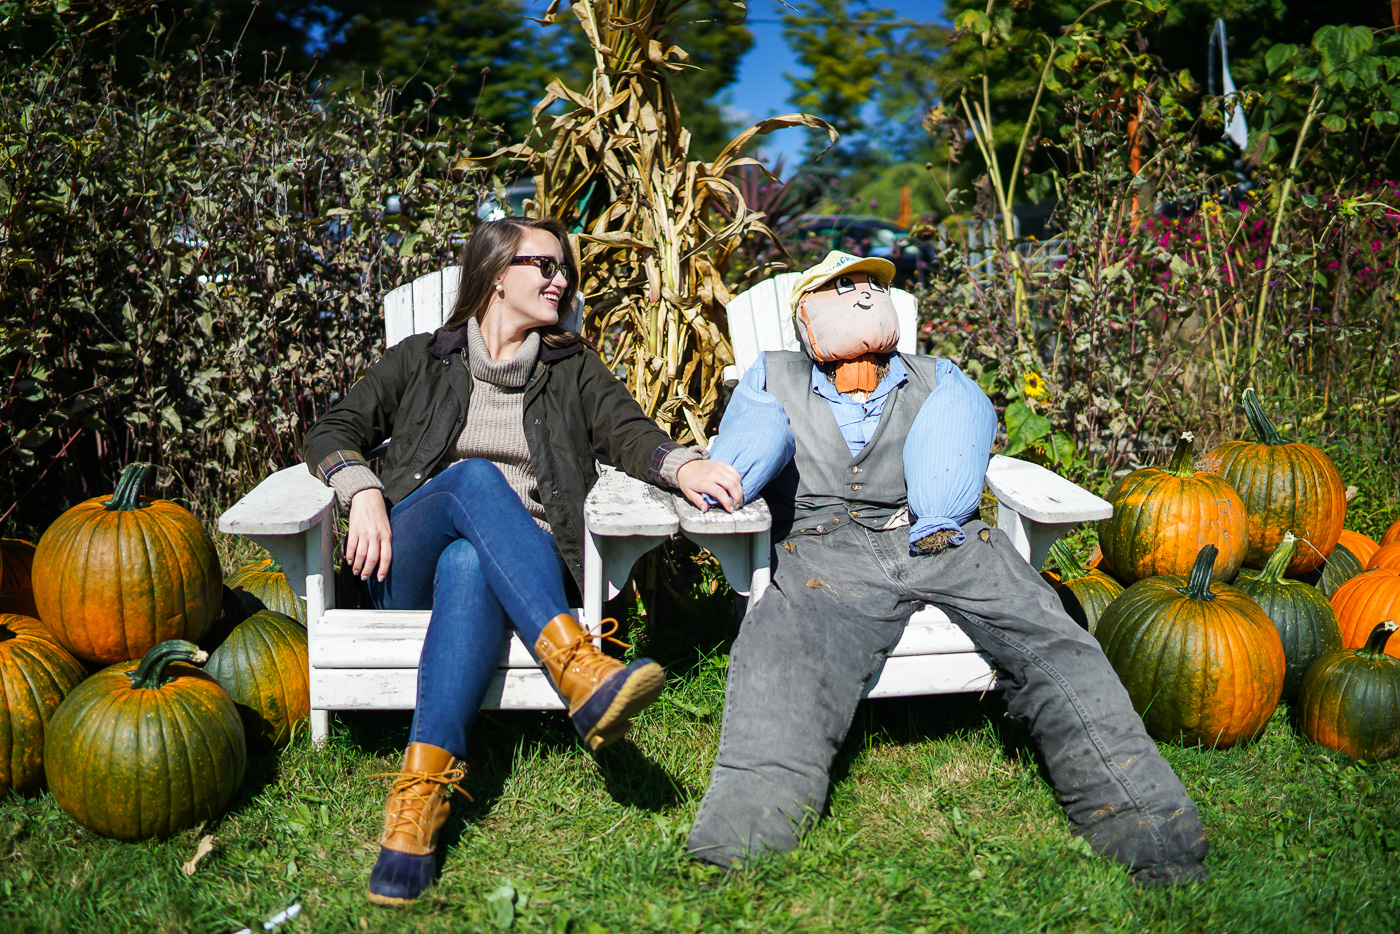 Pumpkin Patch, Vermont, Pumpkin Picking, What to wear pumpkin picking, October Fashion